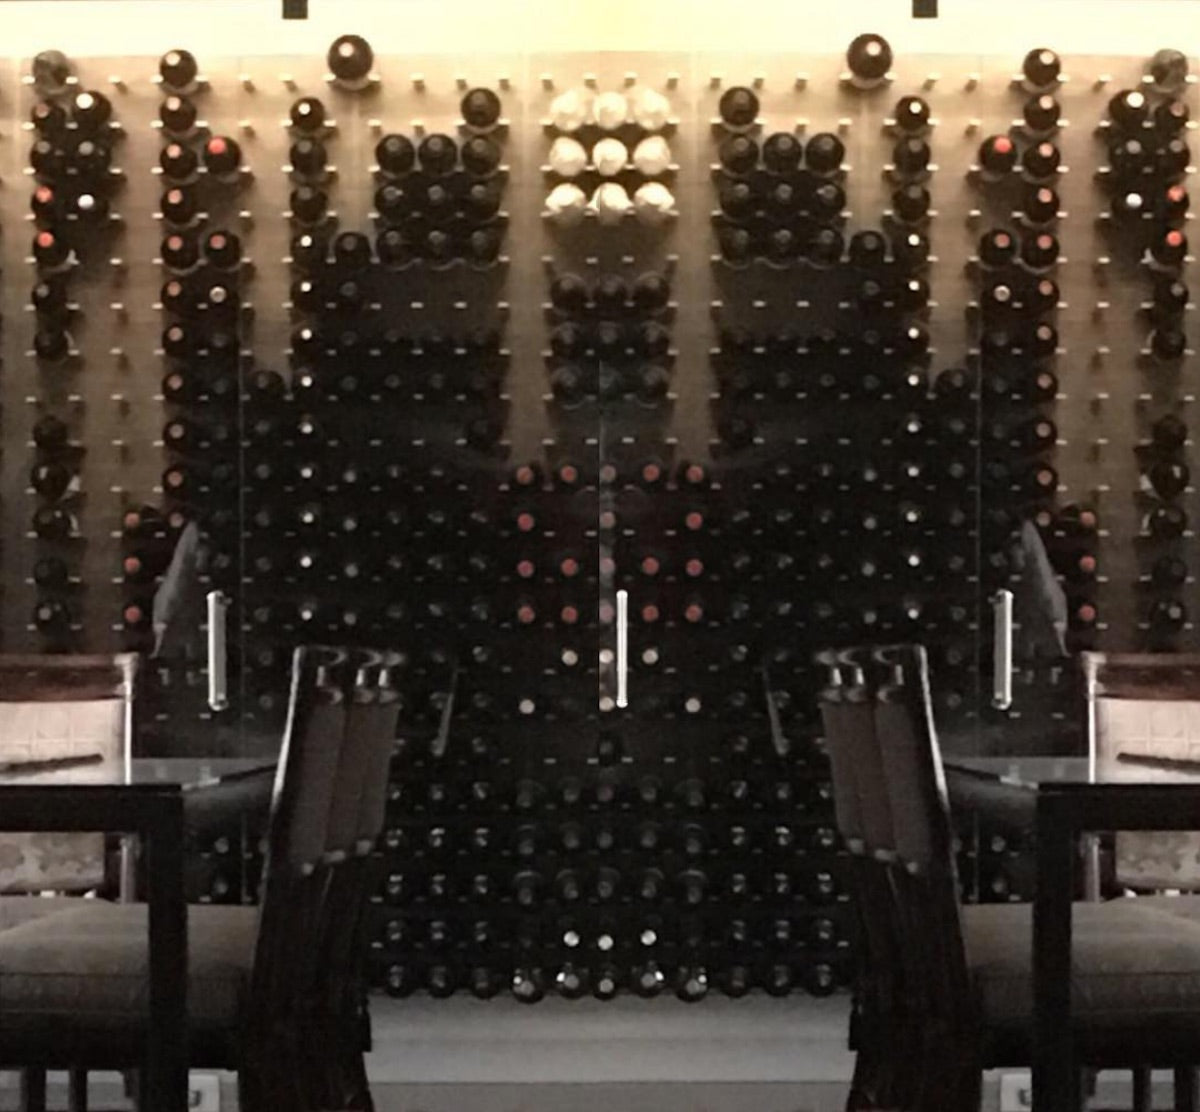 glass enclosed wine cellar at luxe calistoga napa valley